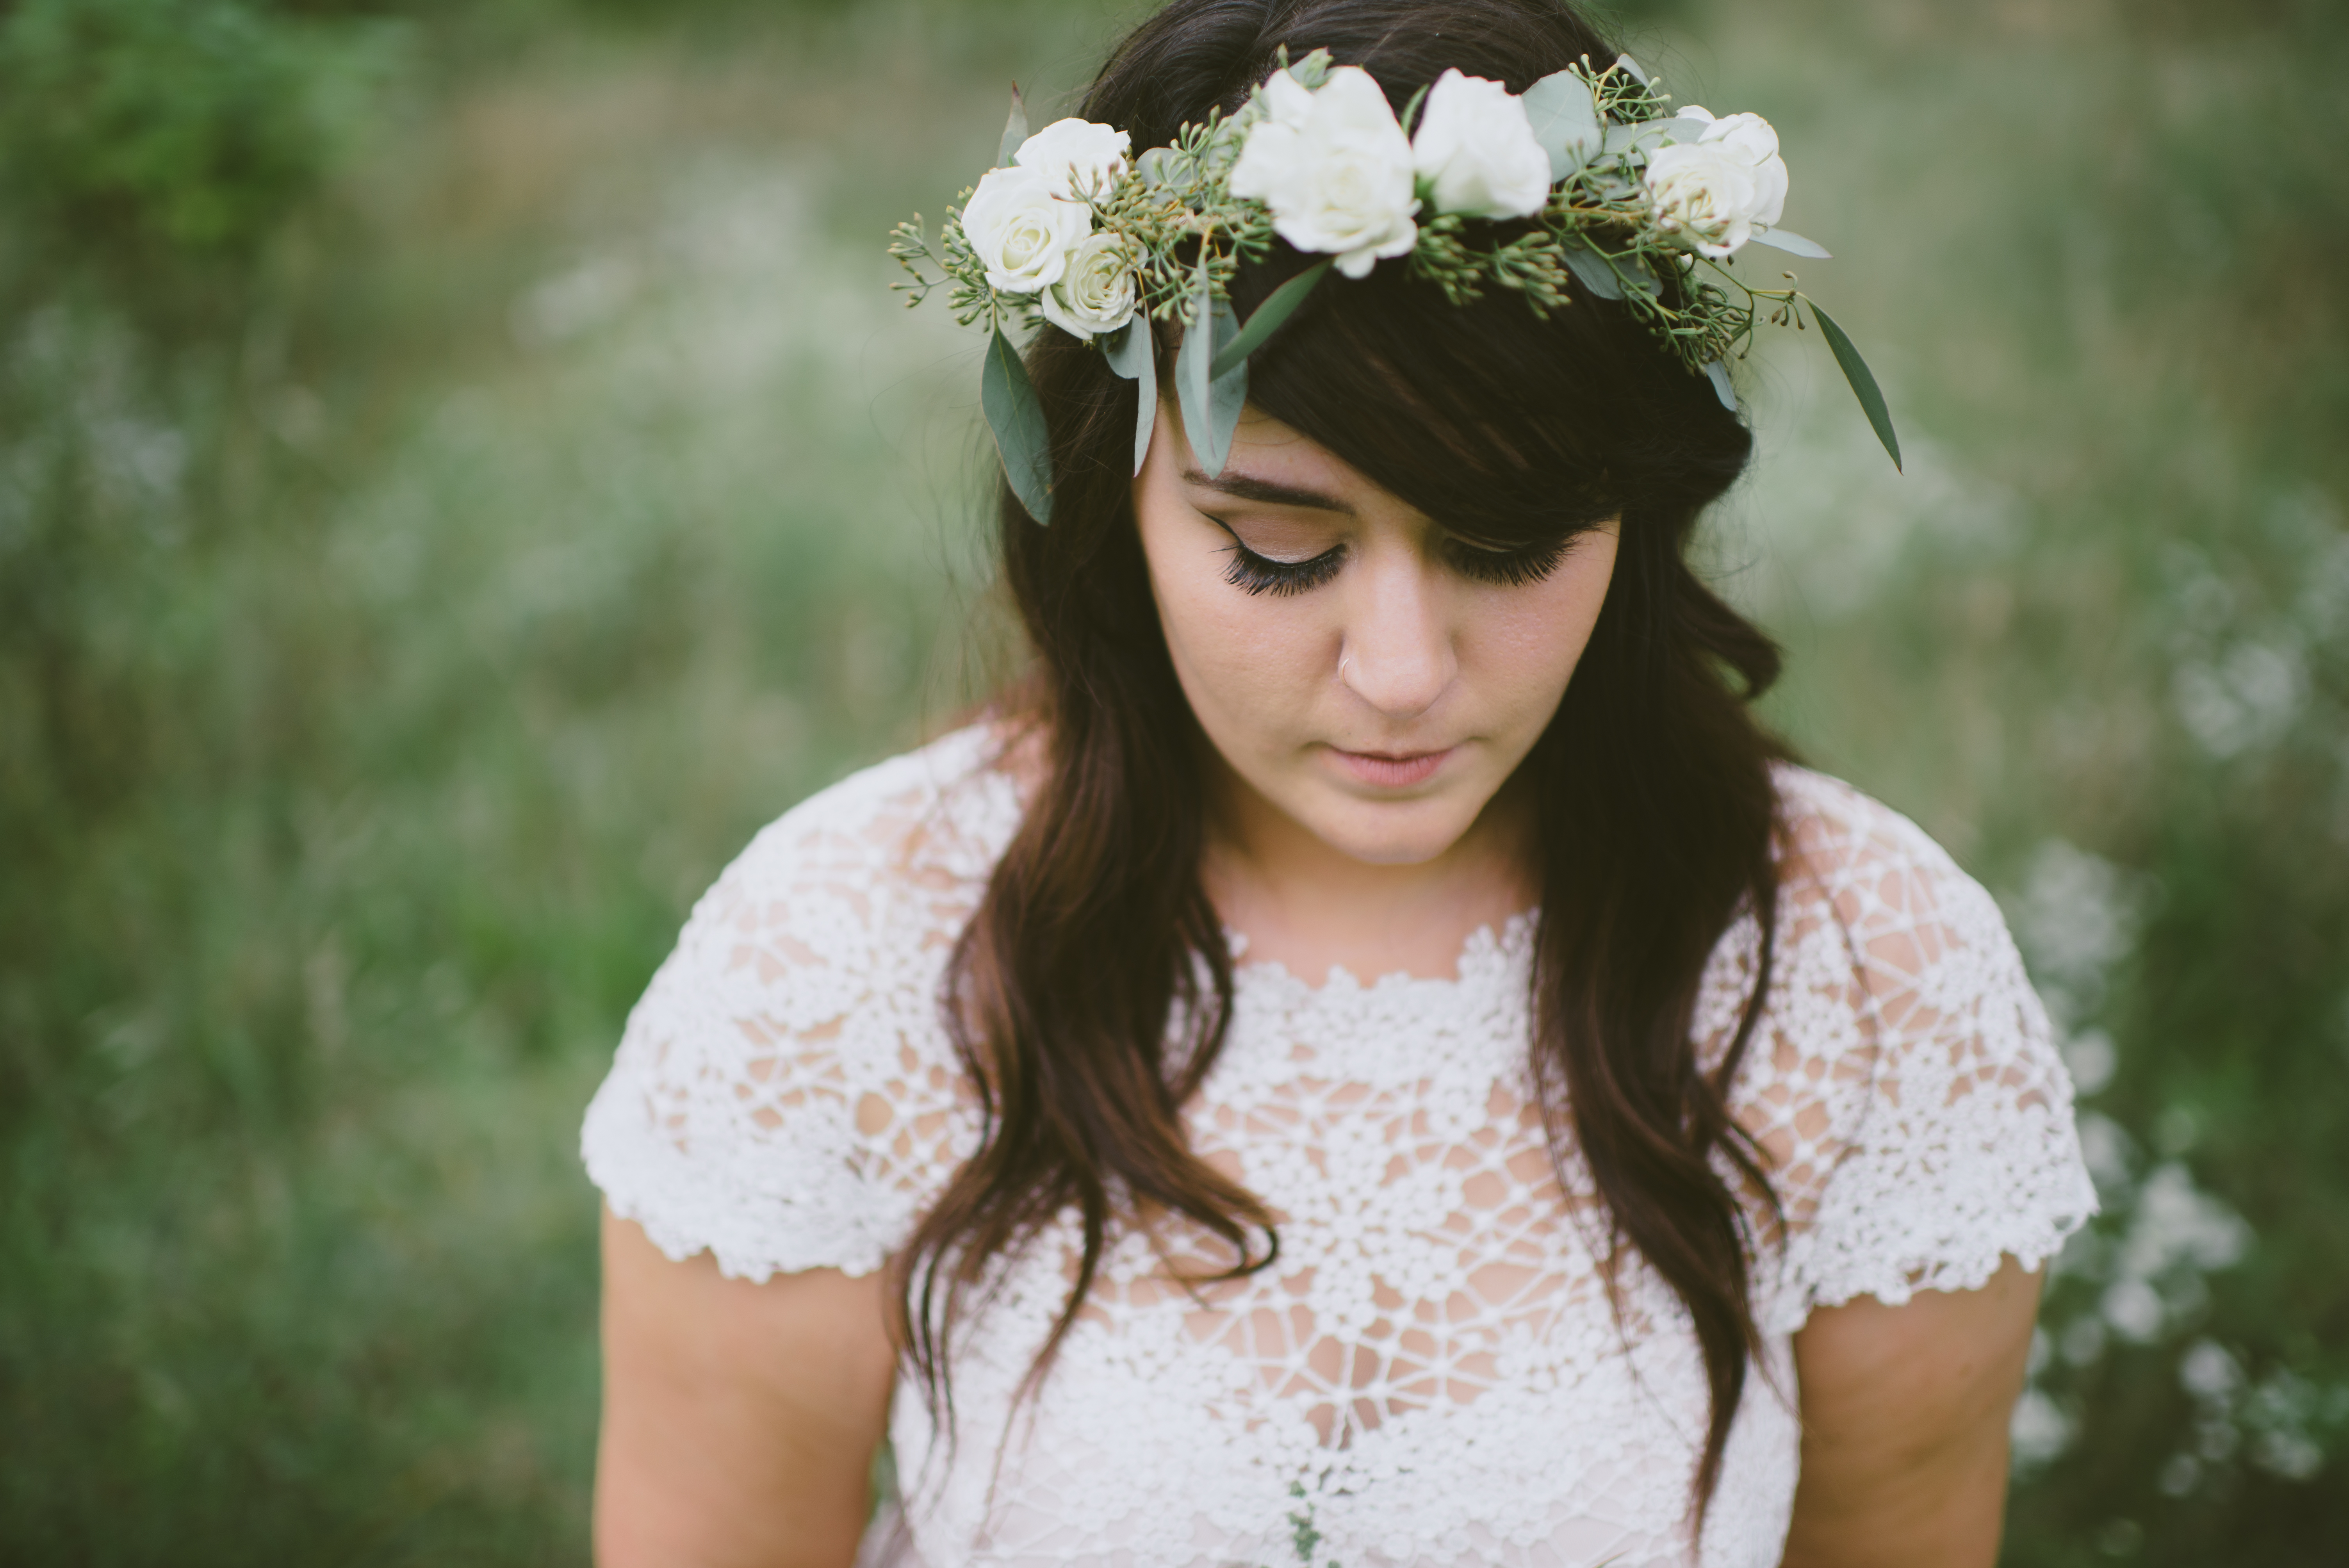 Wedding Hair Donts From the Experts WeddingWire